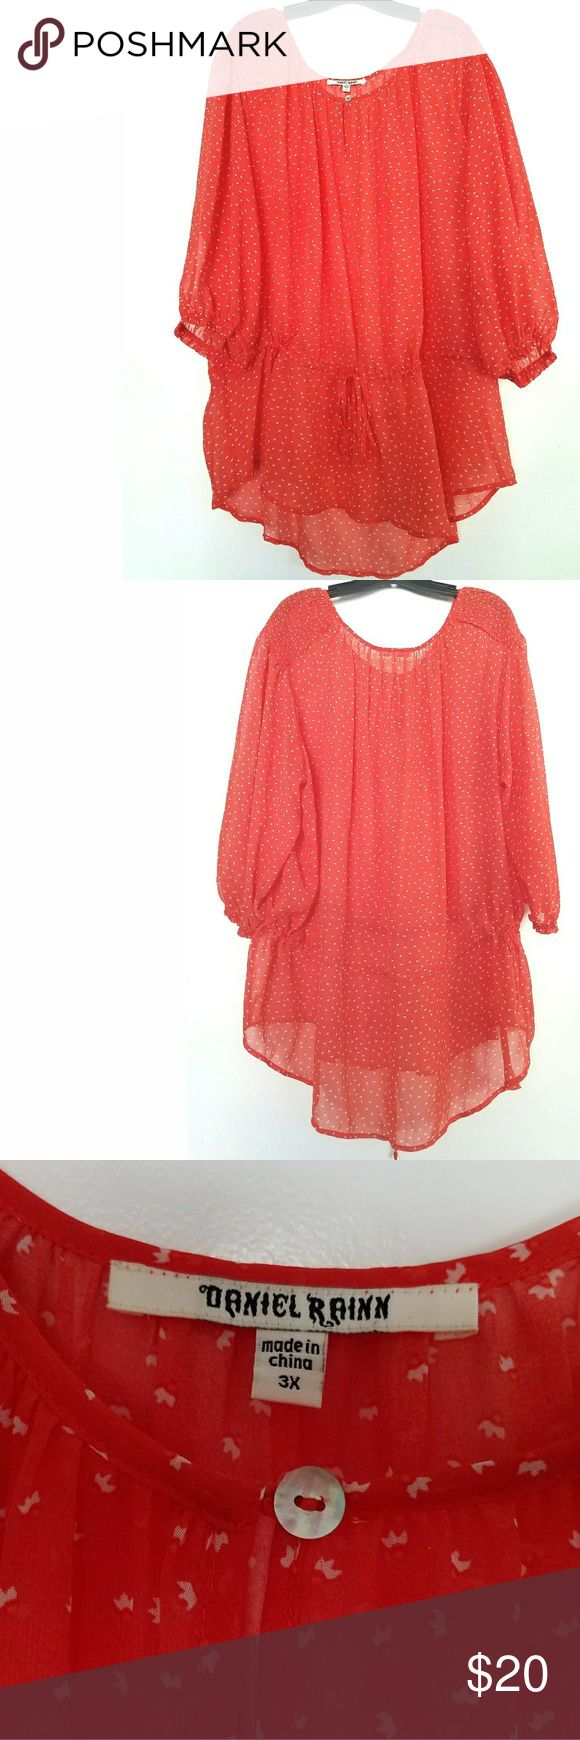 """Daniel Rainn 3X Coral Orange Chiffon Top This Daniel Rainn 3X Coral Orange Chiffon Top is in good used condition. Bust measures 33"""" across laying flat measured from pit to pit so 66"""" around. No stretch. 32"""" long in front; 33.5"""" long in back. Drawstring cinch. Smocking on shoulders. Shell button. ::: Bundle and save! ::: No trades. Daniel Rainn Tops"""